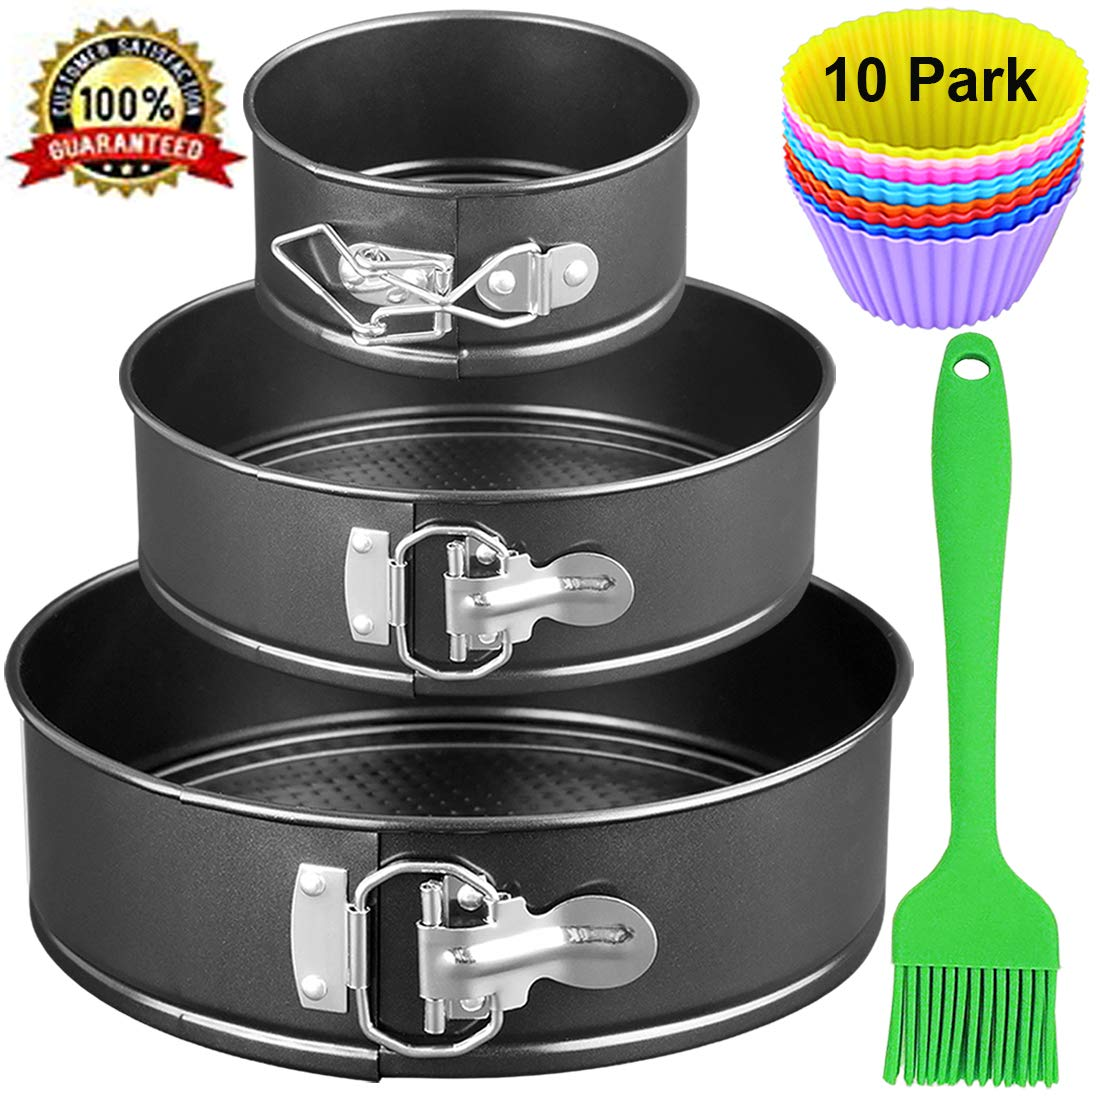 Springform Cheesecake Pan Set of 3, 4 7 9 inch Non-stick and Leak-proof Cake Bakeware with Removable Bottom & Quick-Release Latch-Black